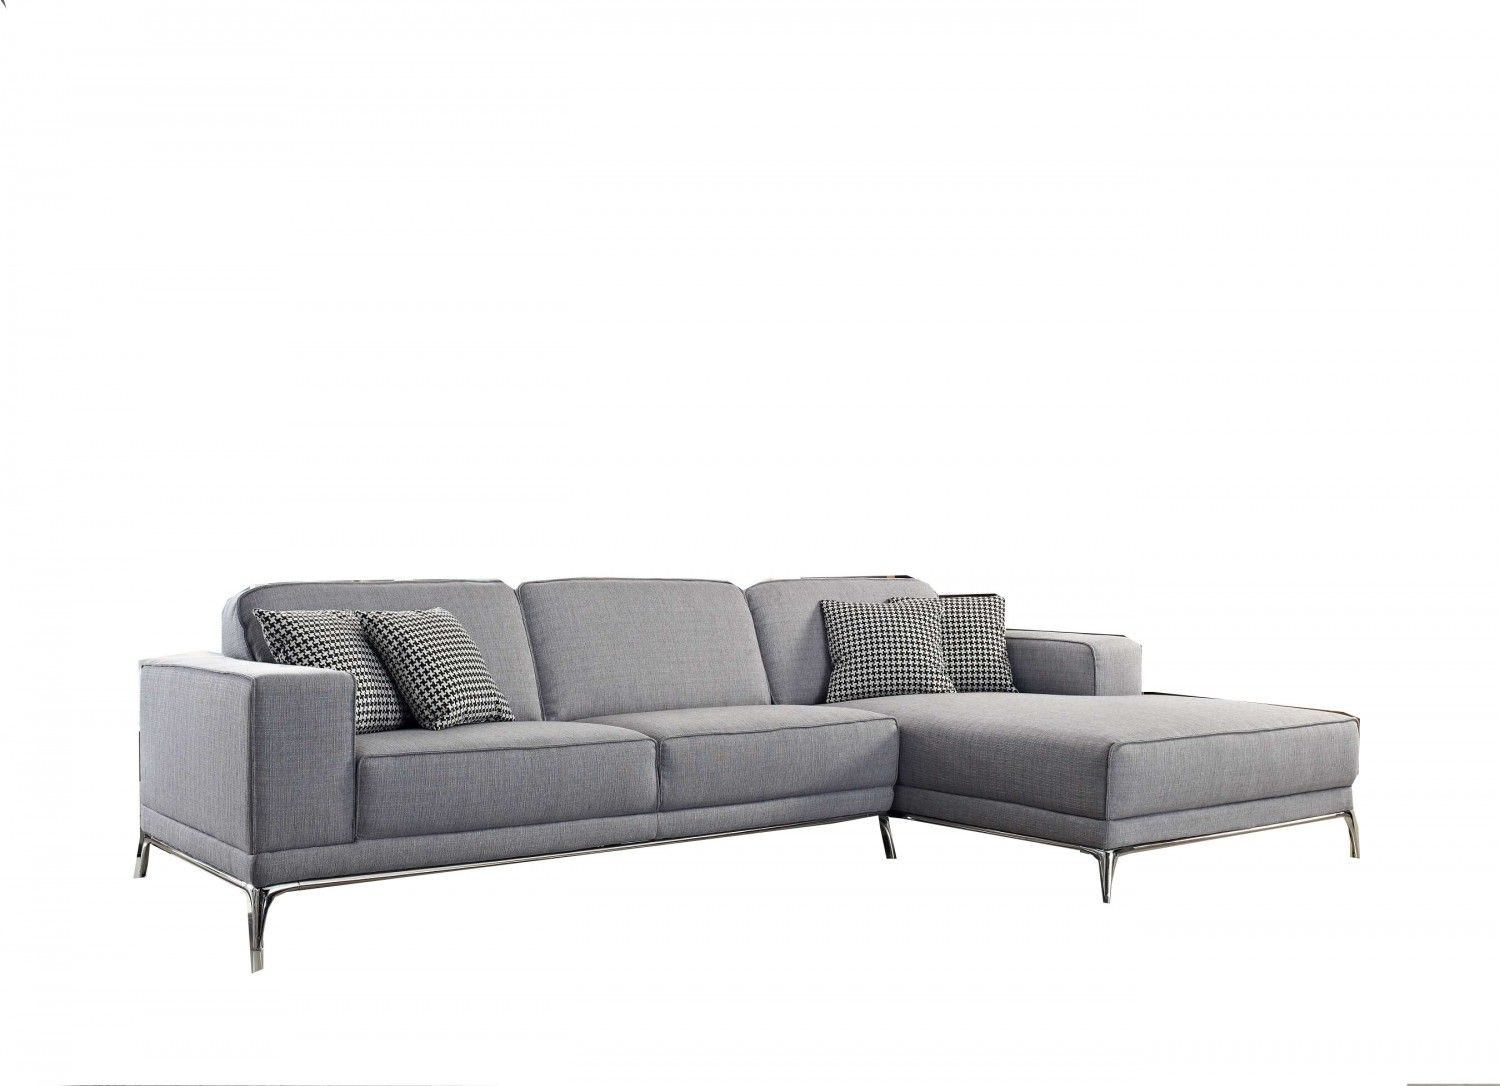 Agata Sectional Fabric Sofa In Light Grey Color By Creative